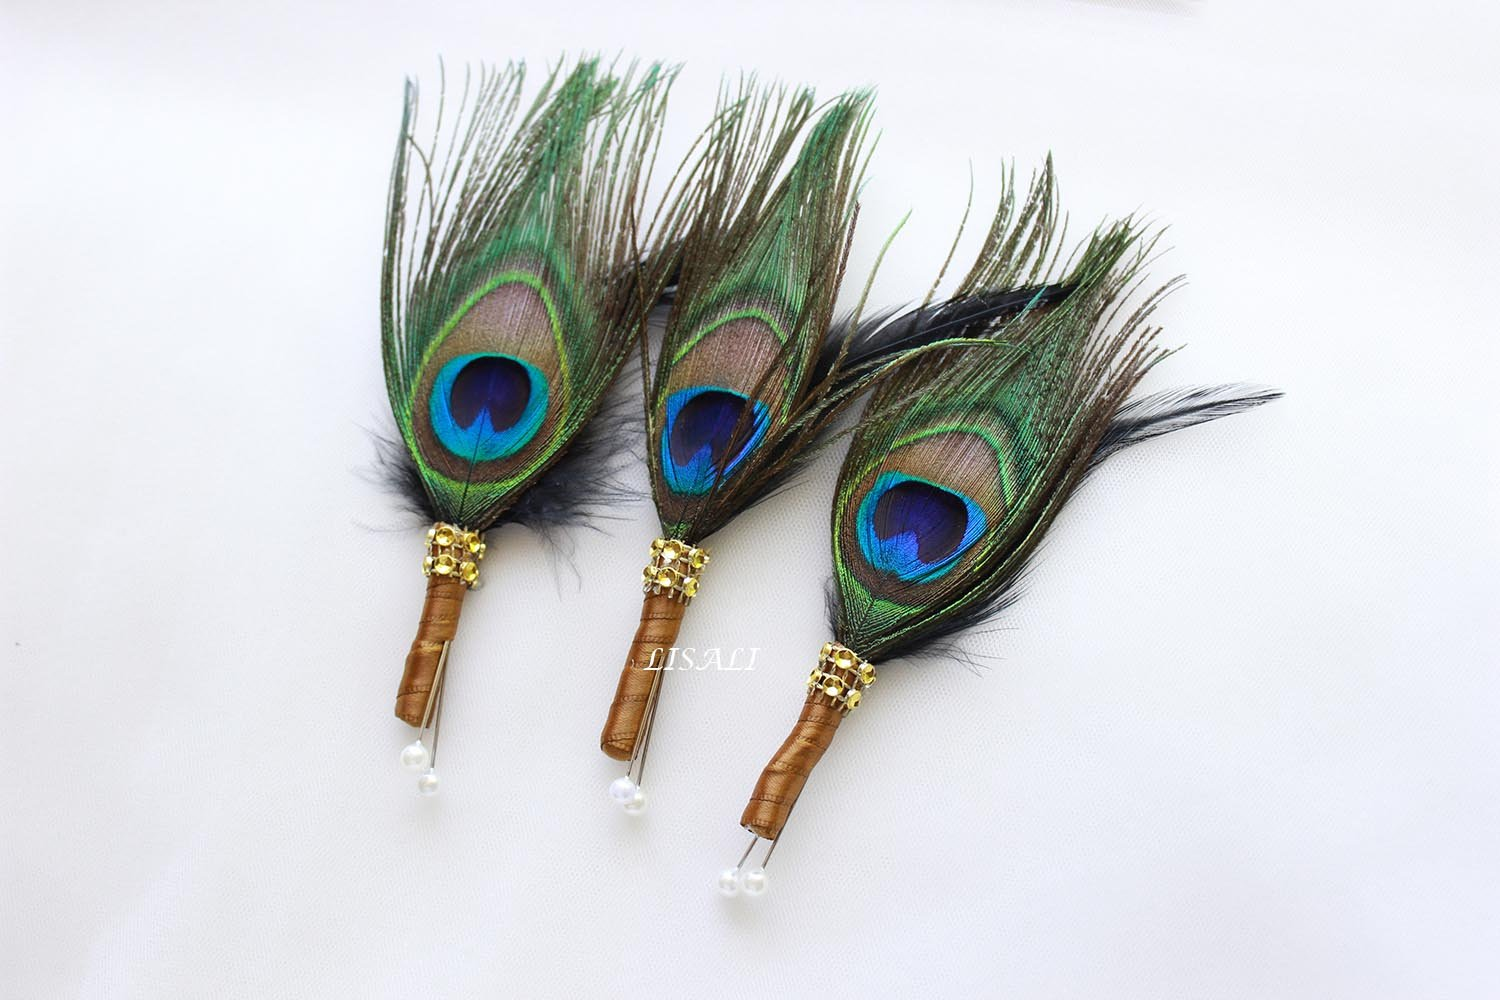 LISALI 3 pcs Peacock Feather Boutonniere, Wedding Feathers Boutonniere, Button Hole, Great Gatsby 1920s Boutonniere, Groom and Groomsmen